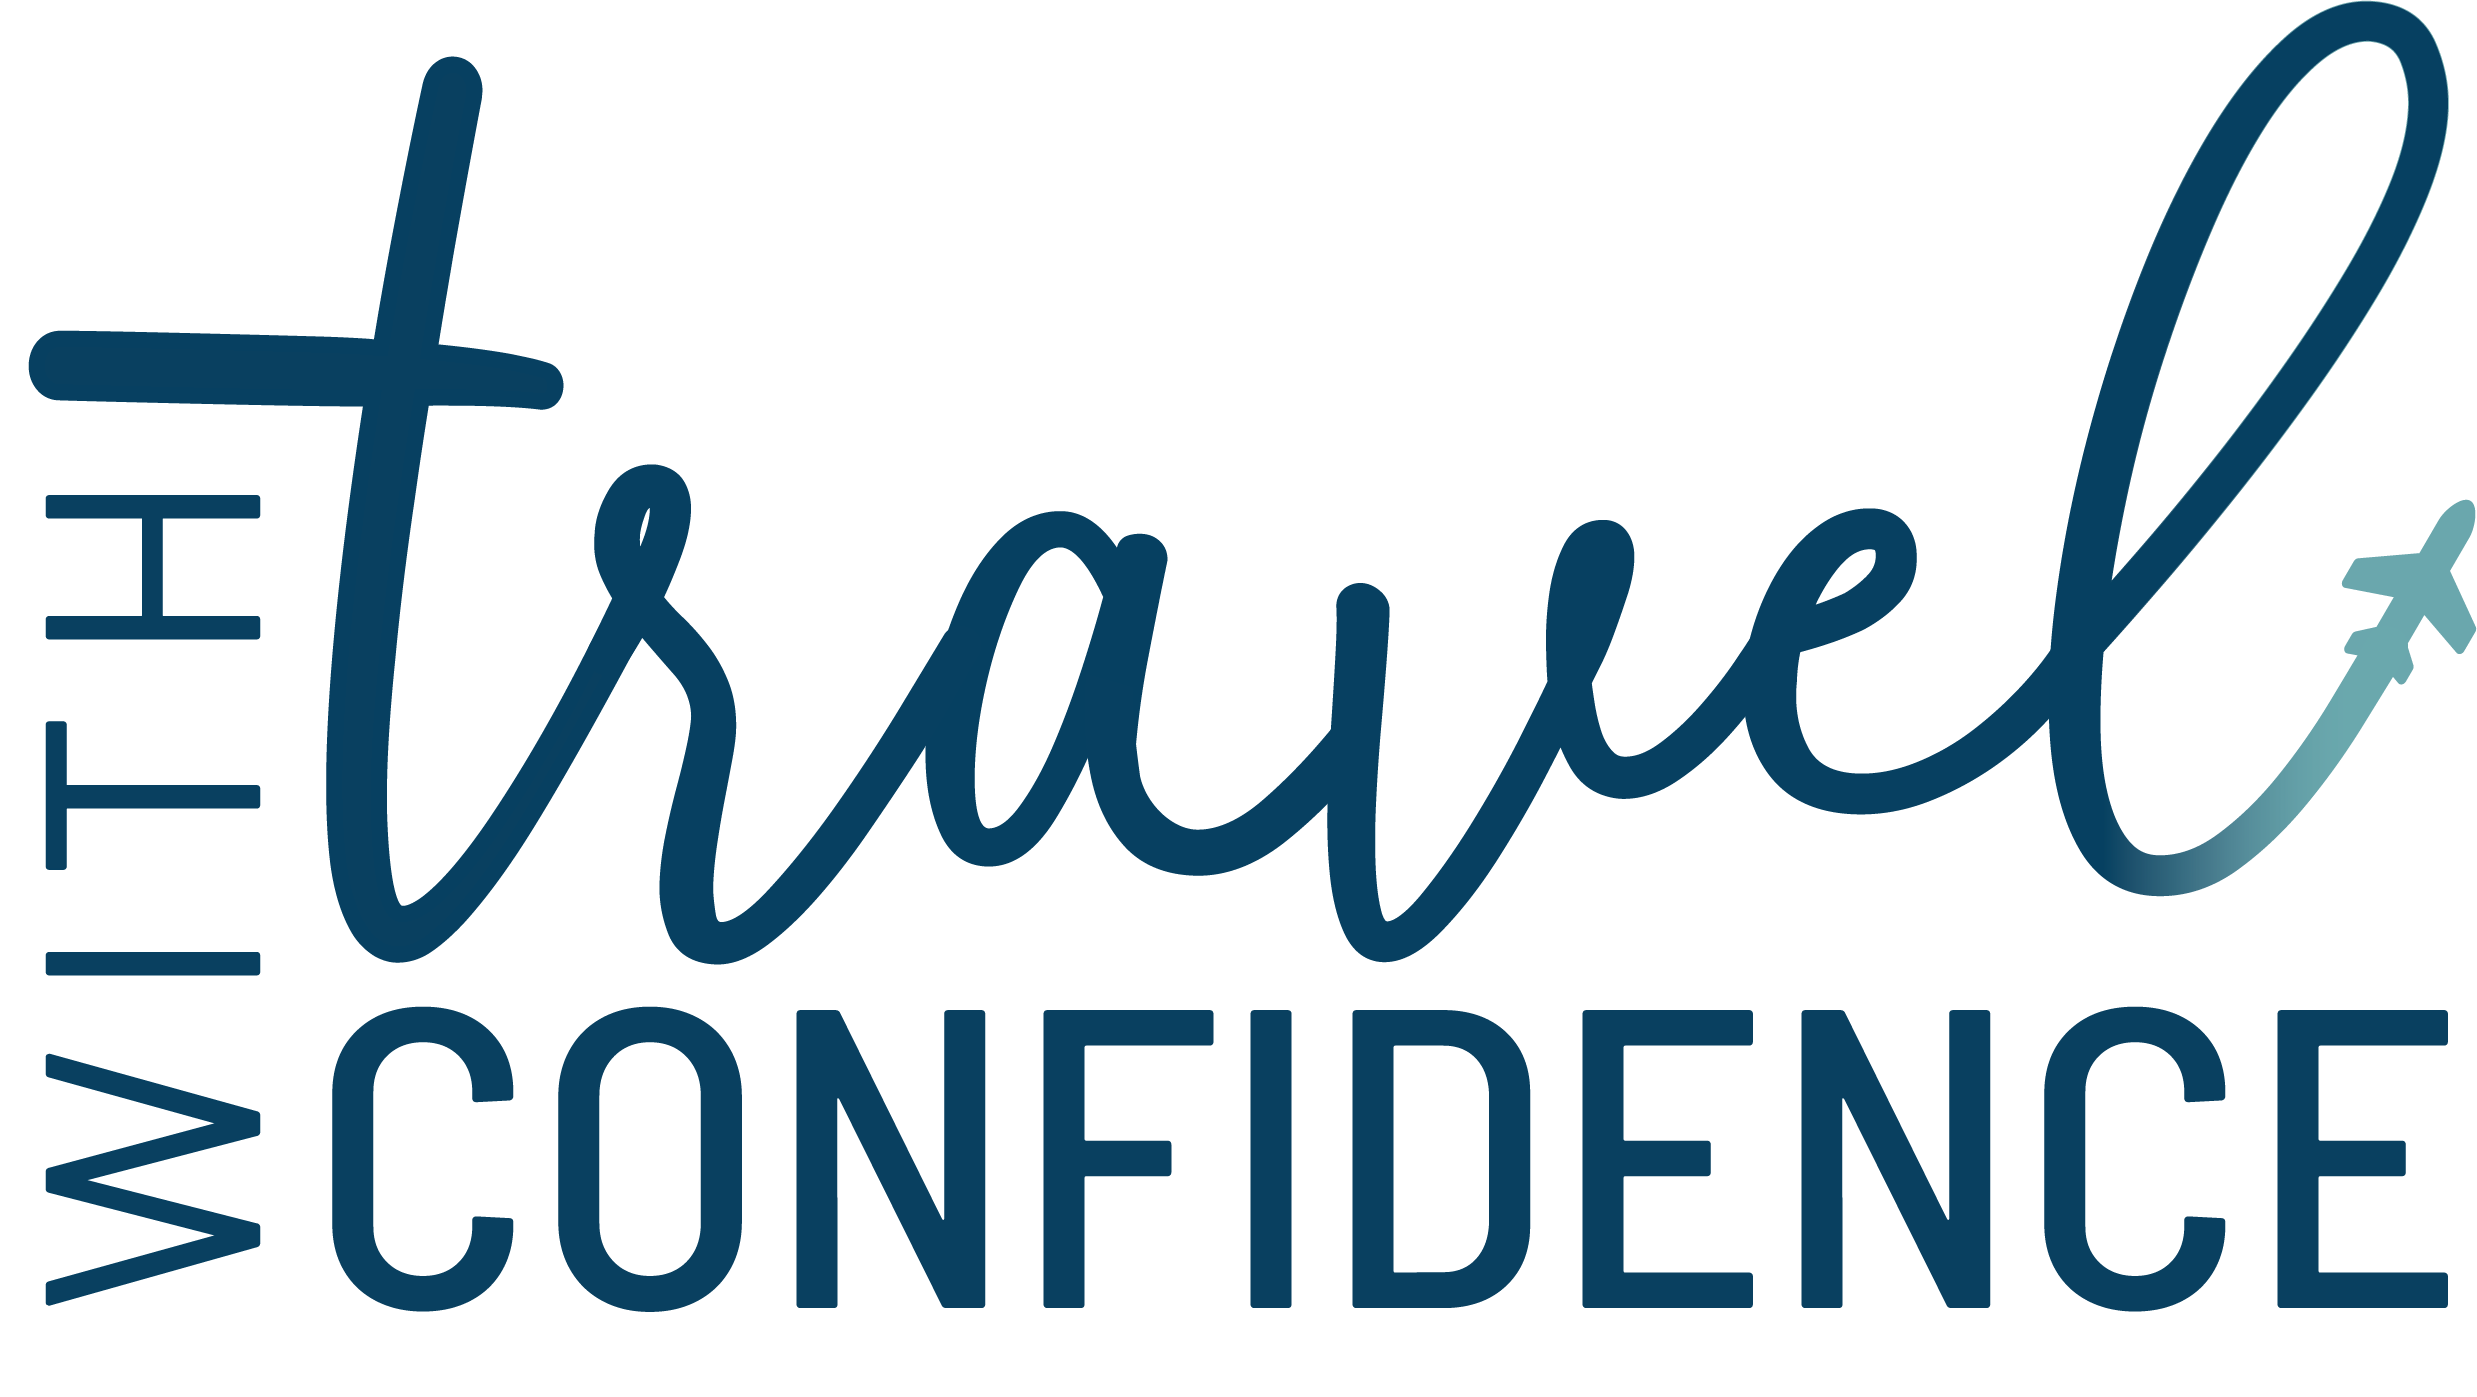 travel-with-confidence-logo